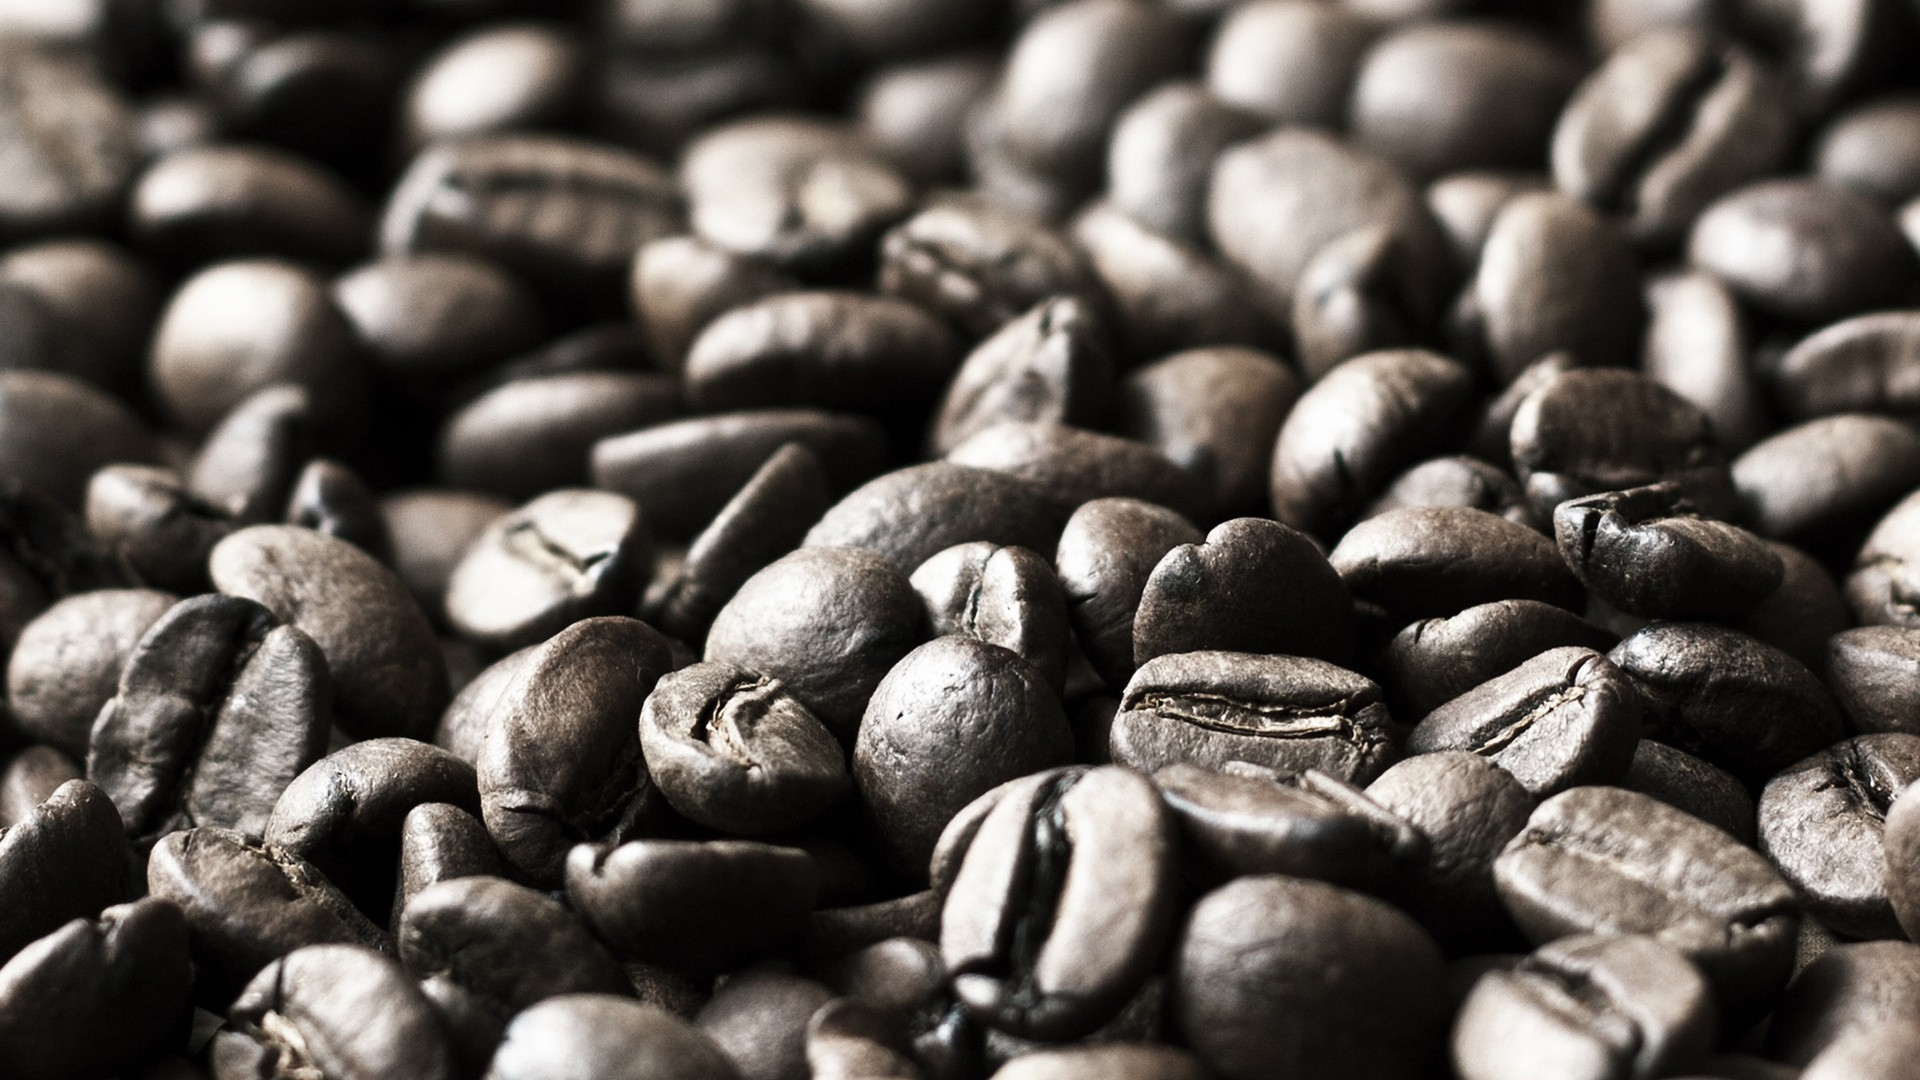 Coffee Beans Background HD wallpaper | 1920x1080 | #24076